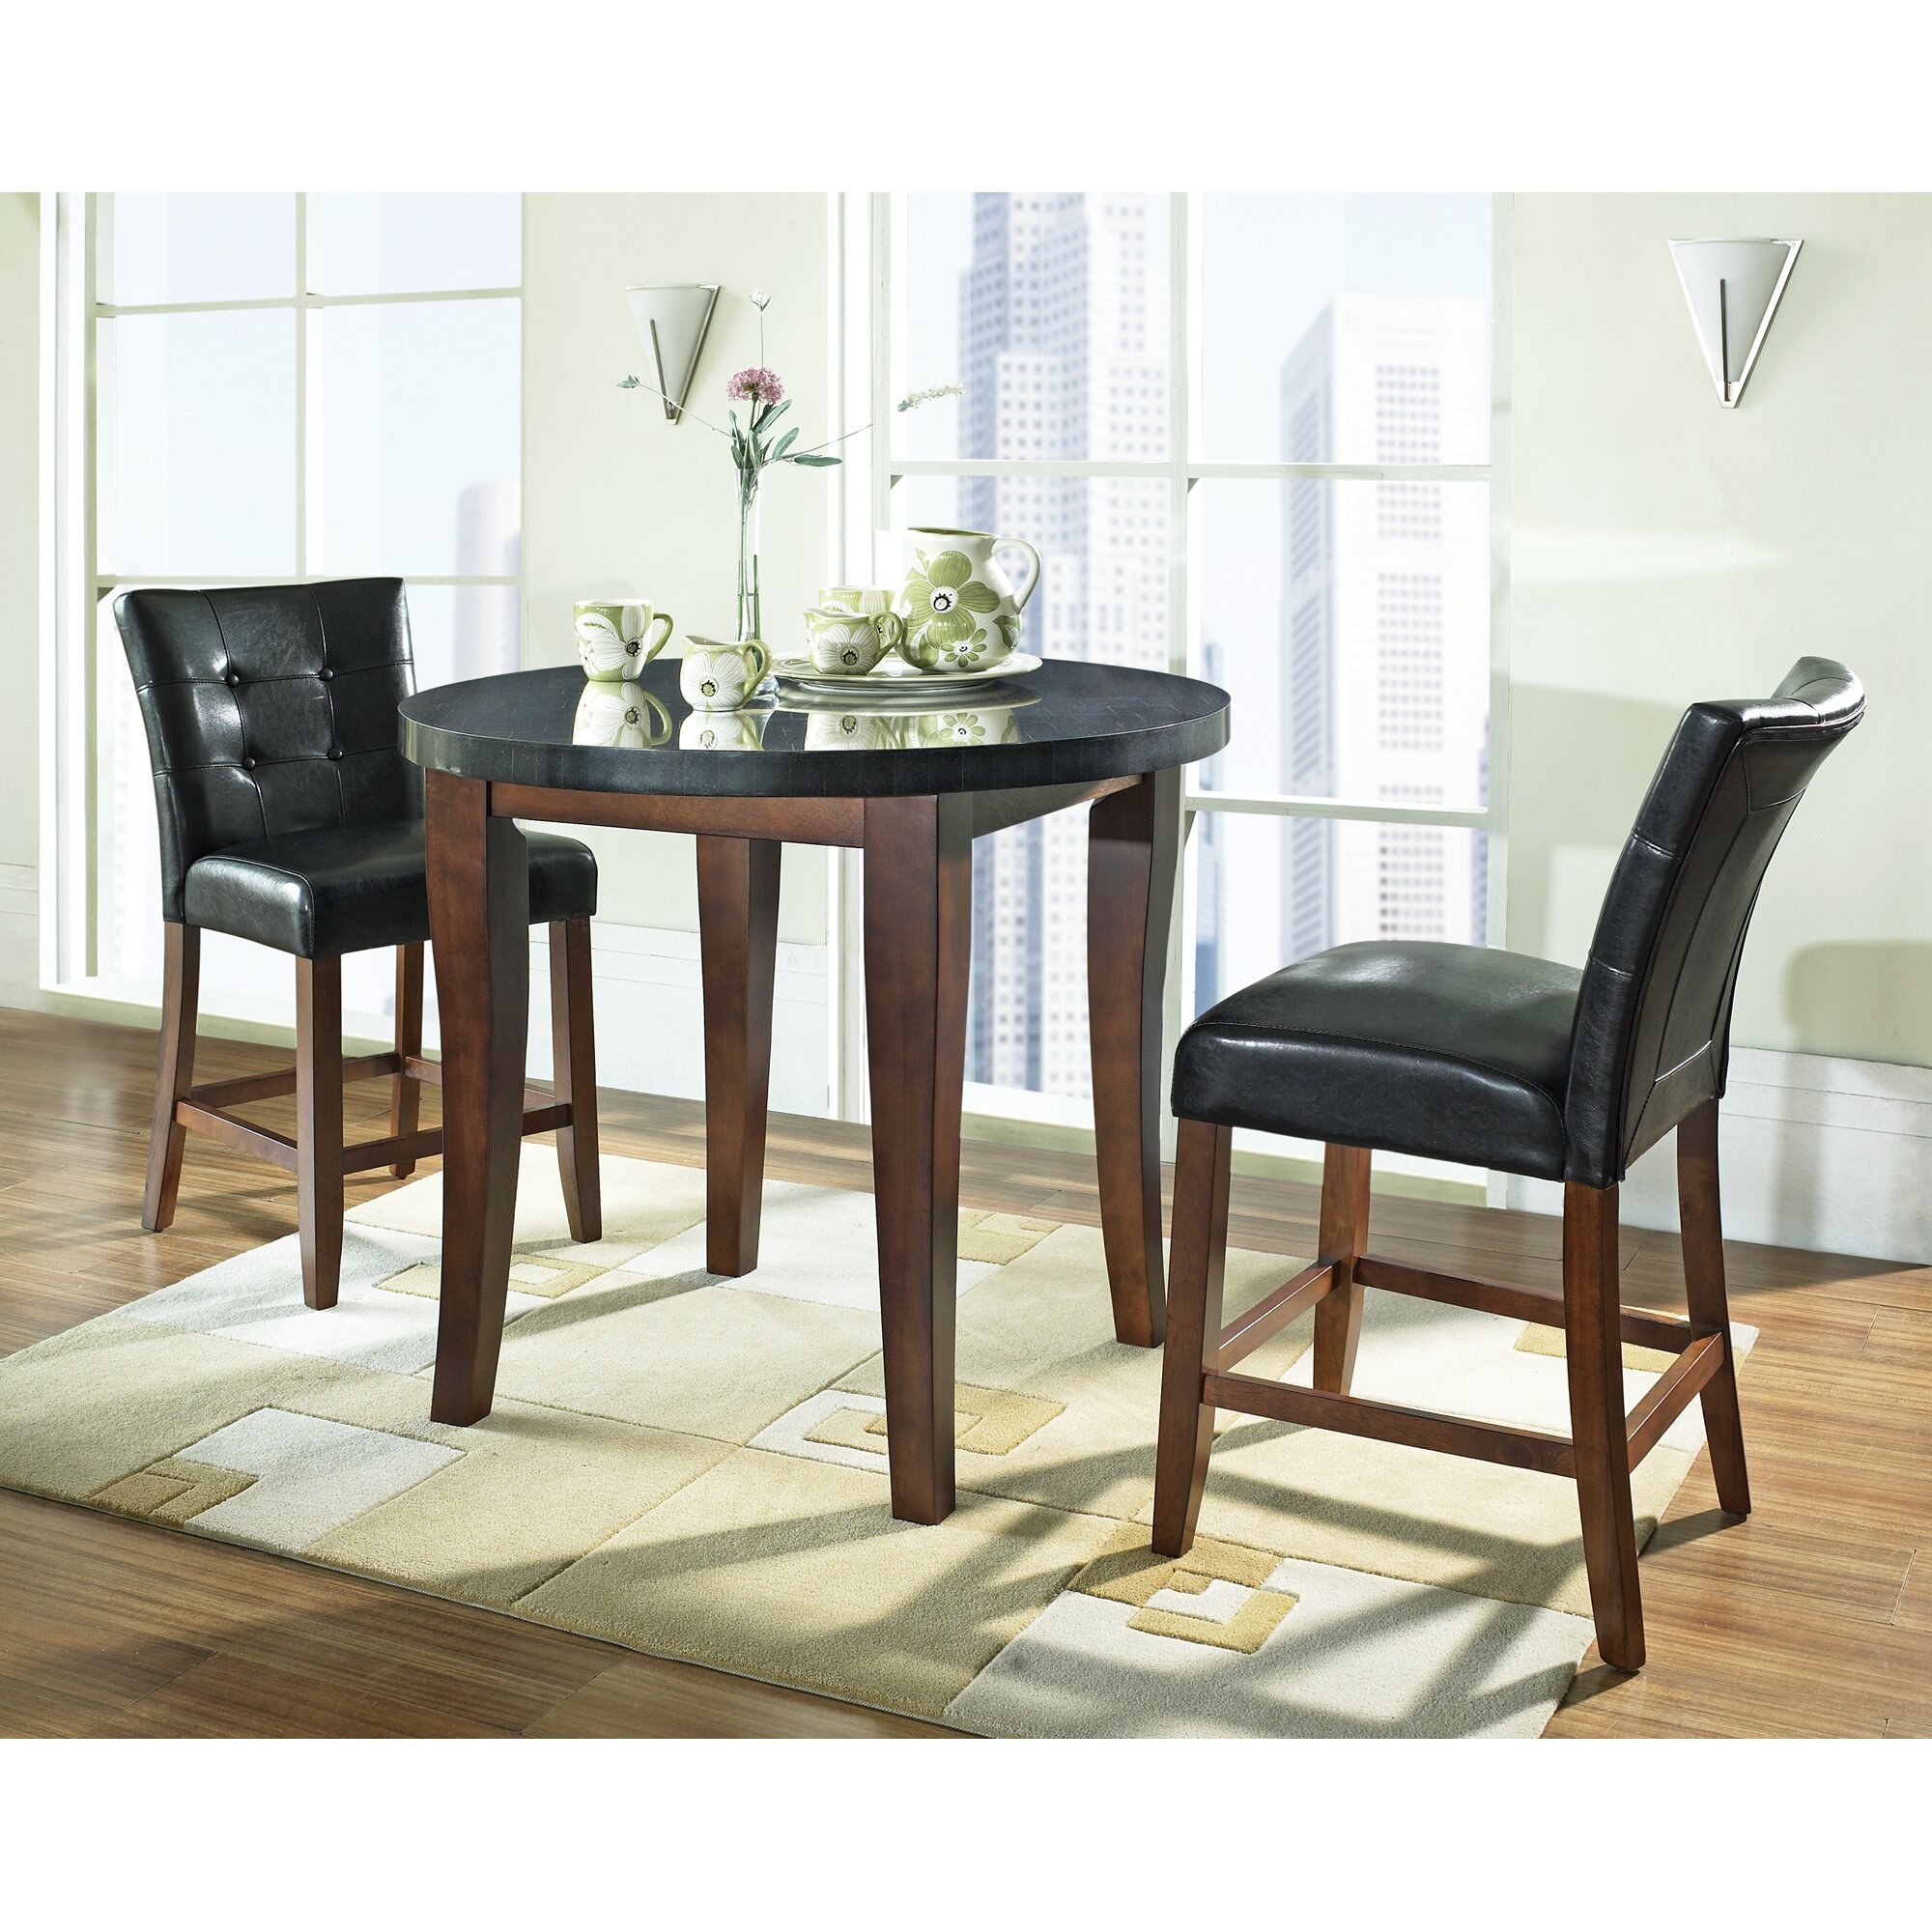 darby home co tilman  piece counter height dining set  reviews  - tilman  piece counter height dining set